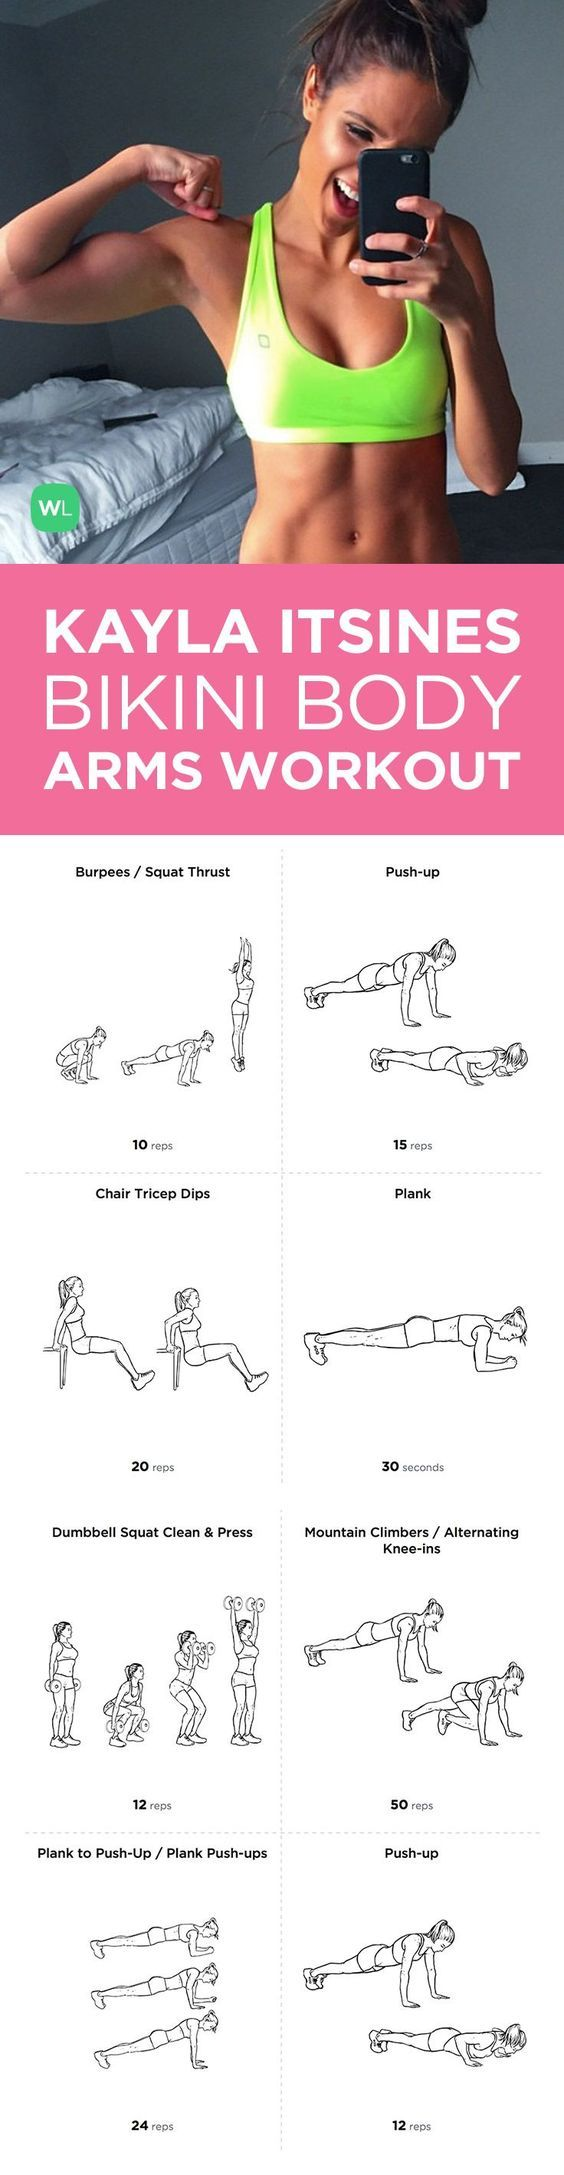 Tone and strengther your arms with this Arms Circuit Workout from the Bikini Body Guide by Kayla Istines: http://workoutlabs.com/s/1B1zy: